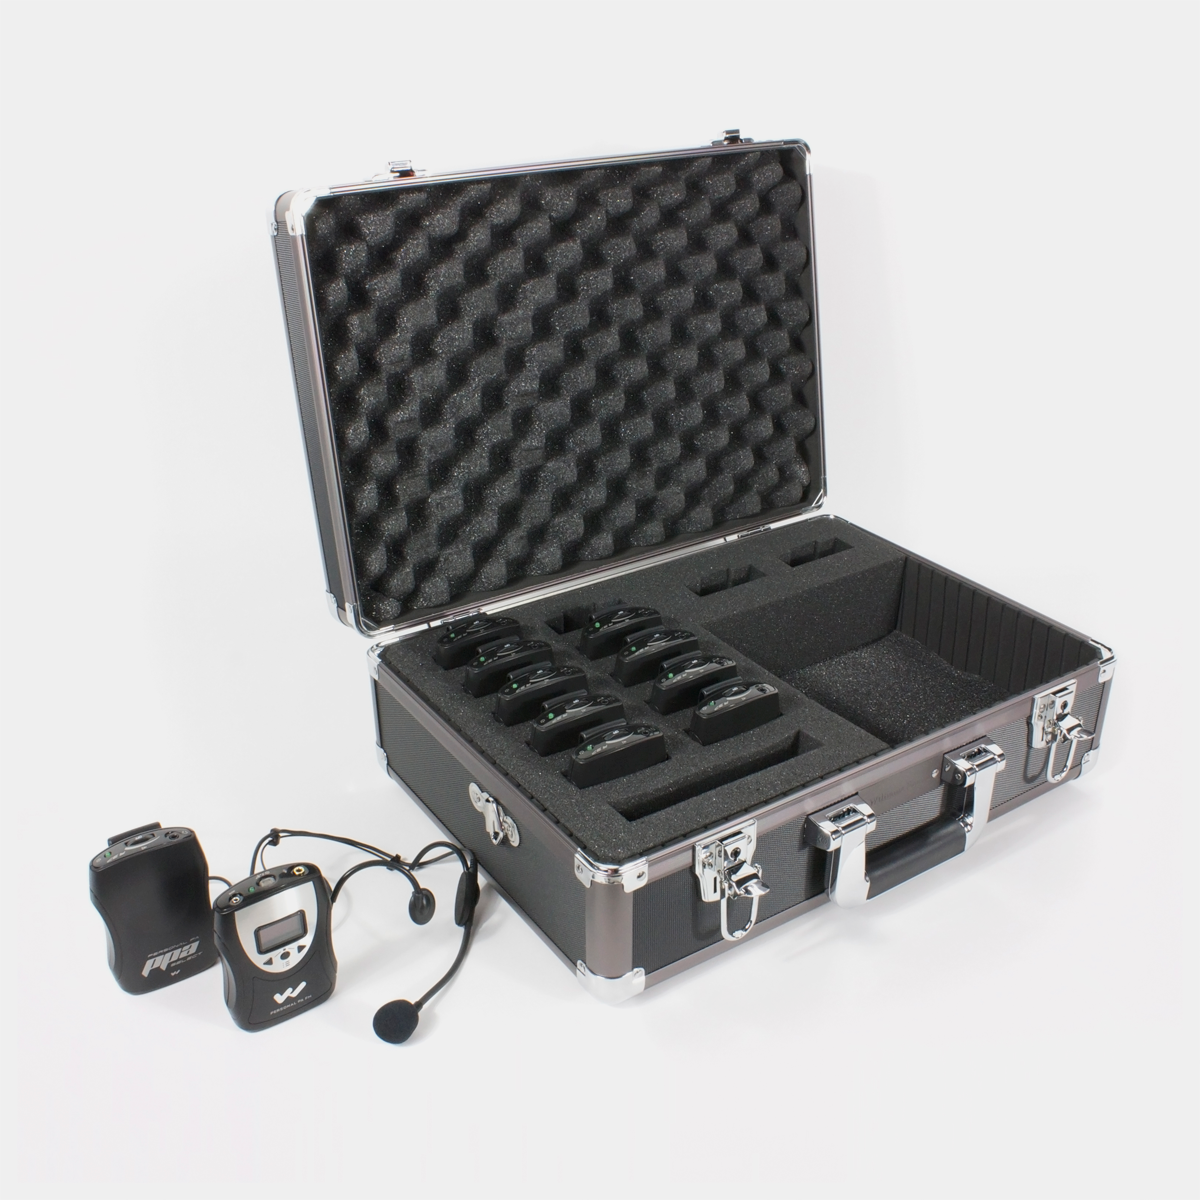 TGS PRO 737 PERSONAL PA® FM TOUR GUIDE SYSTEM